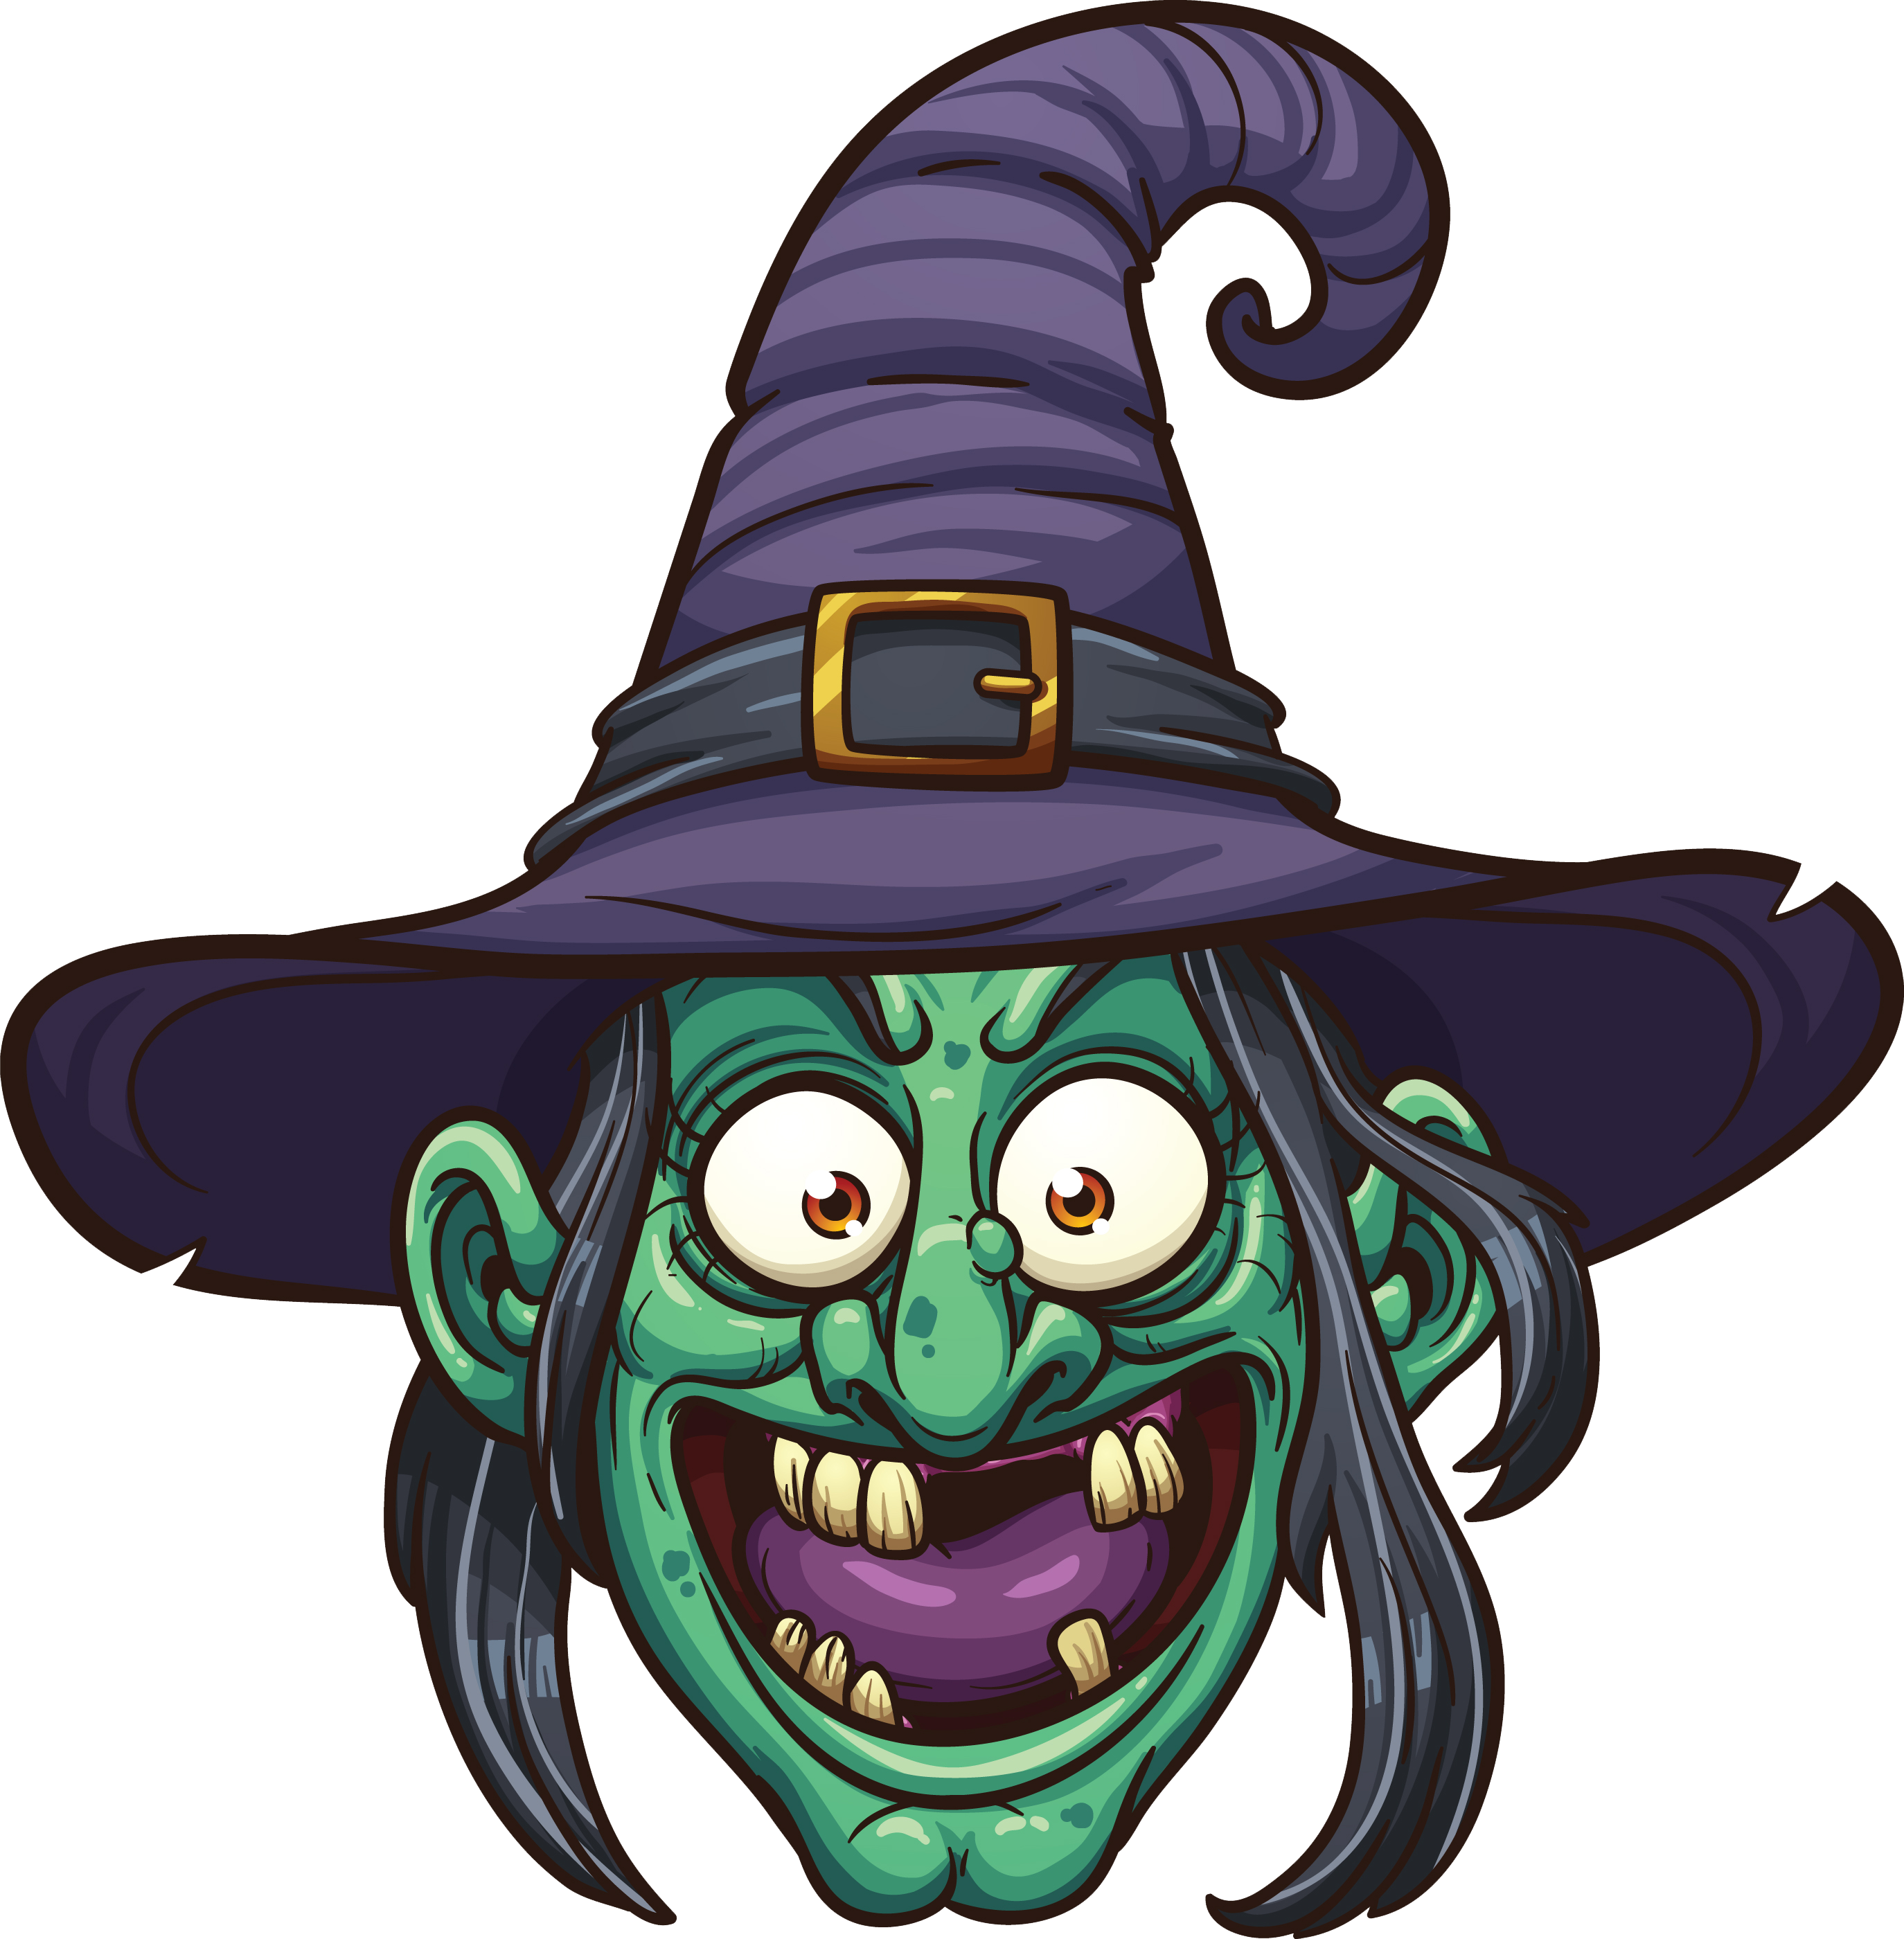 Drawing witch face. Witchcraft cartoon illustration png